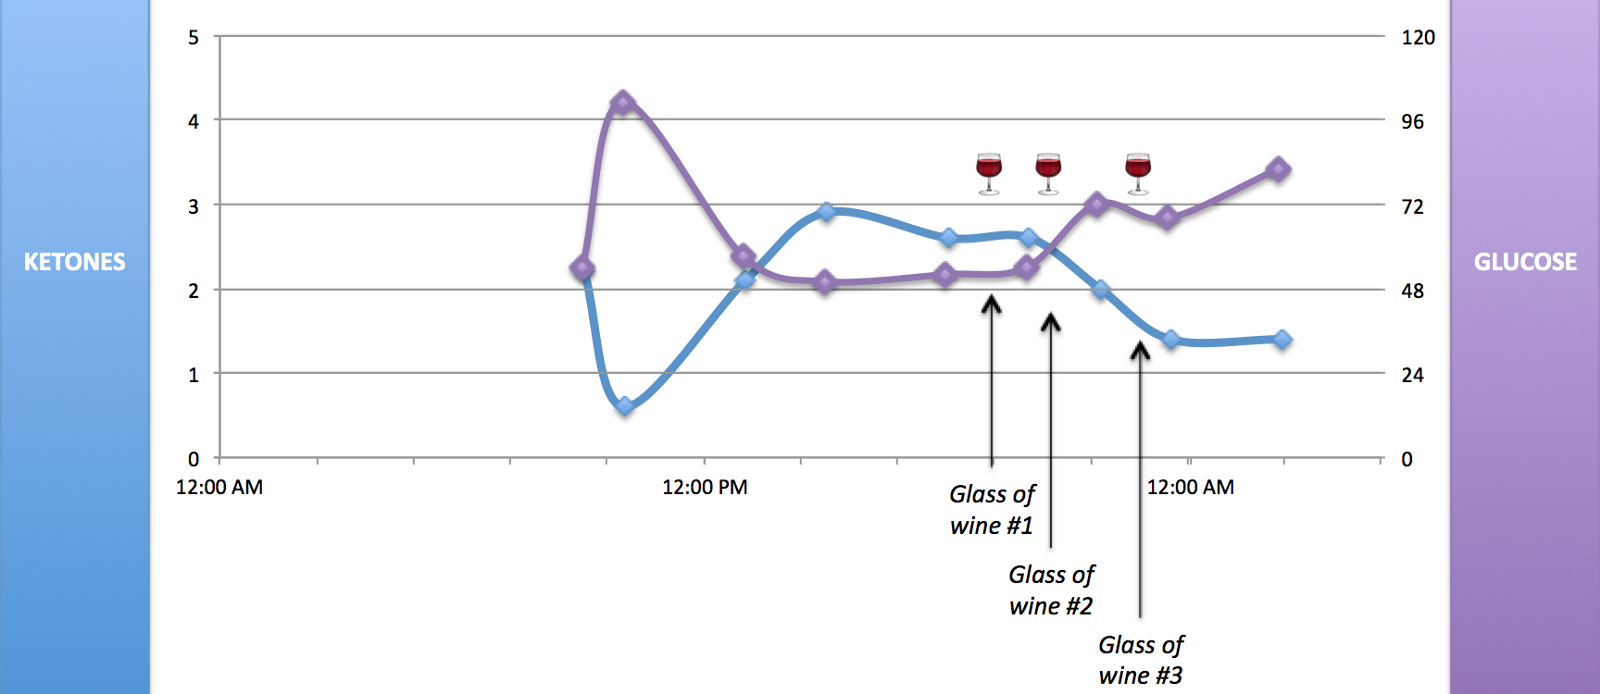 fasting and ketones data from 3 days with no food only wine